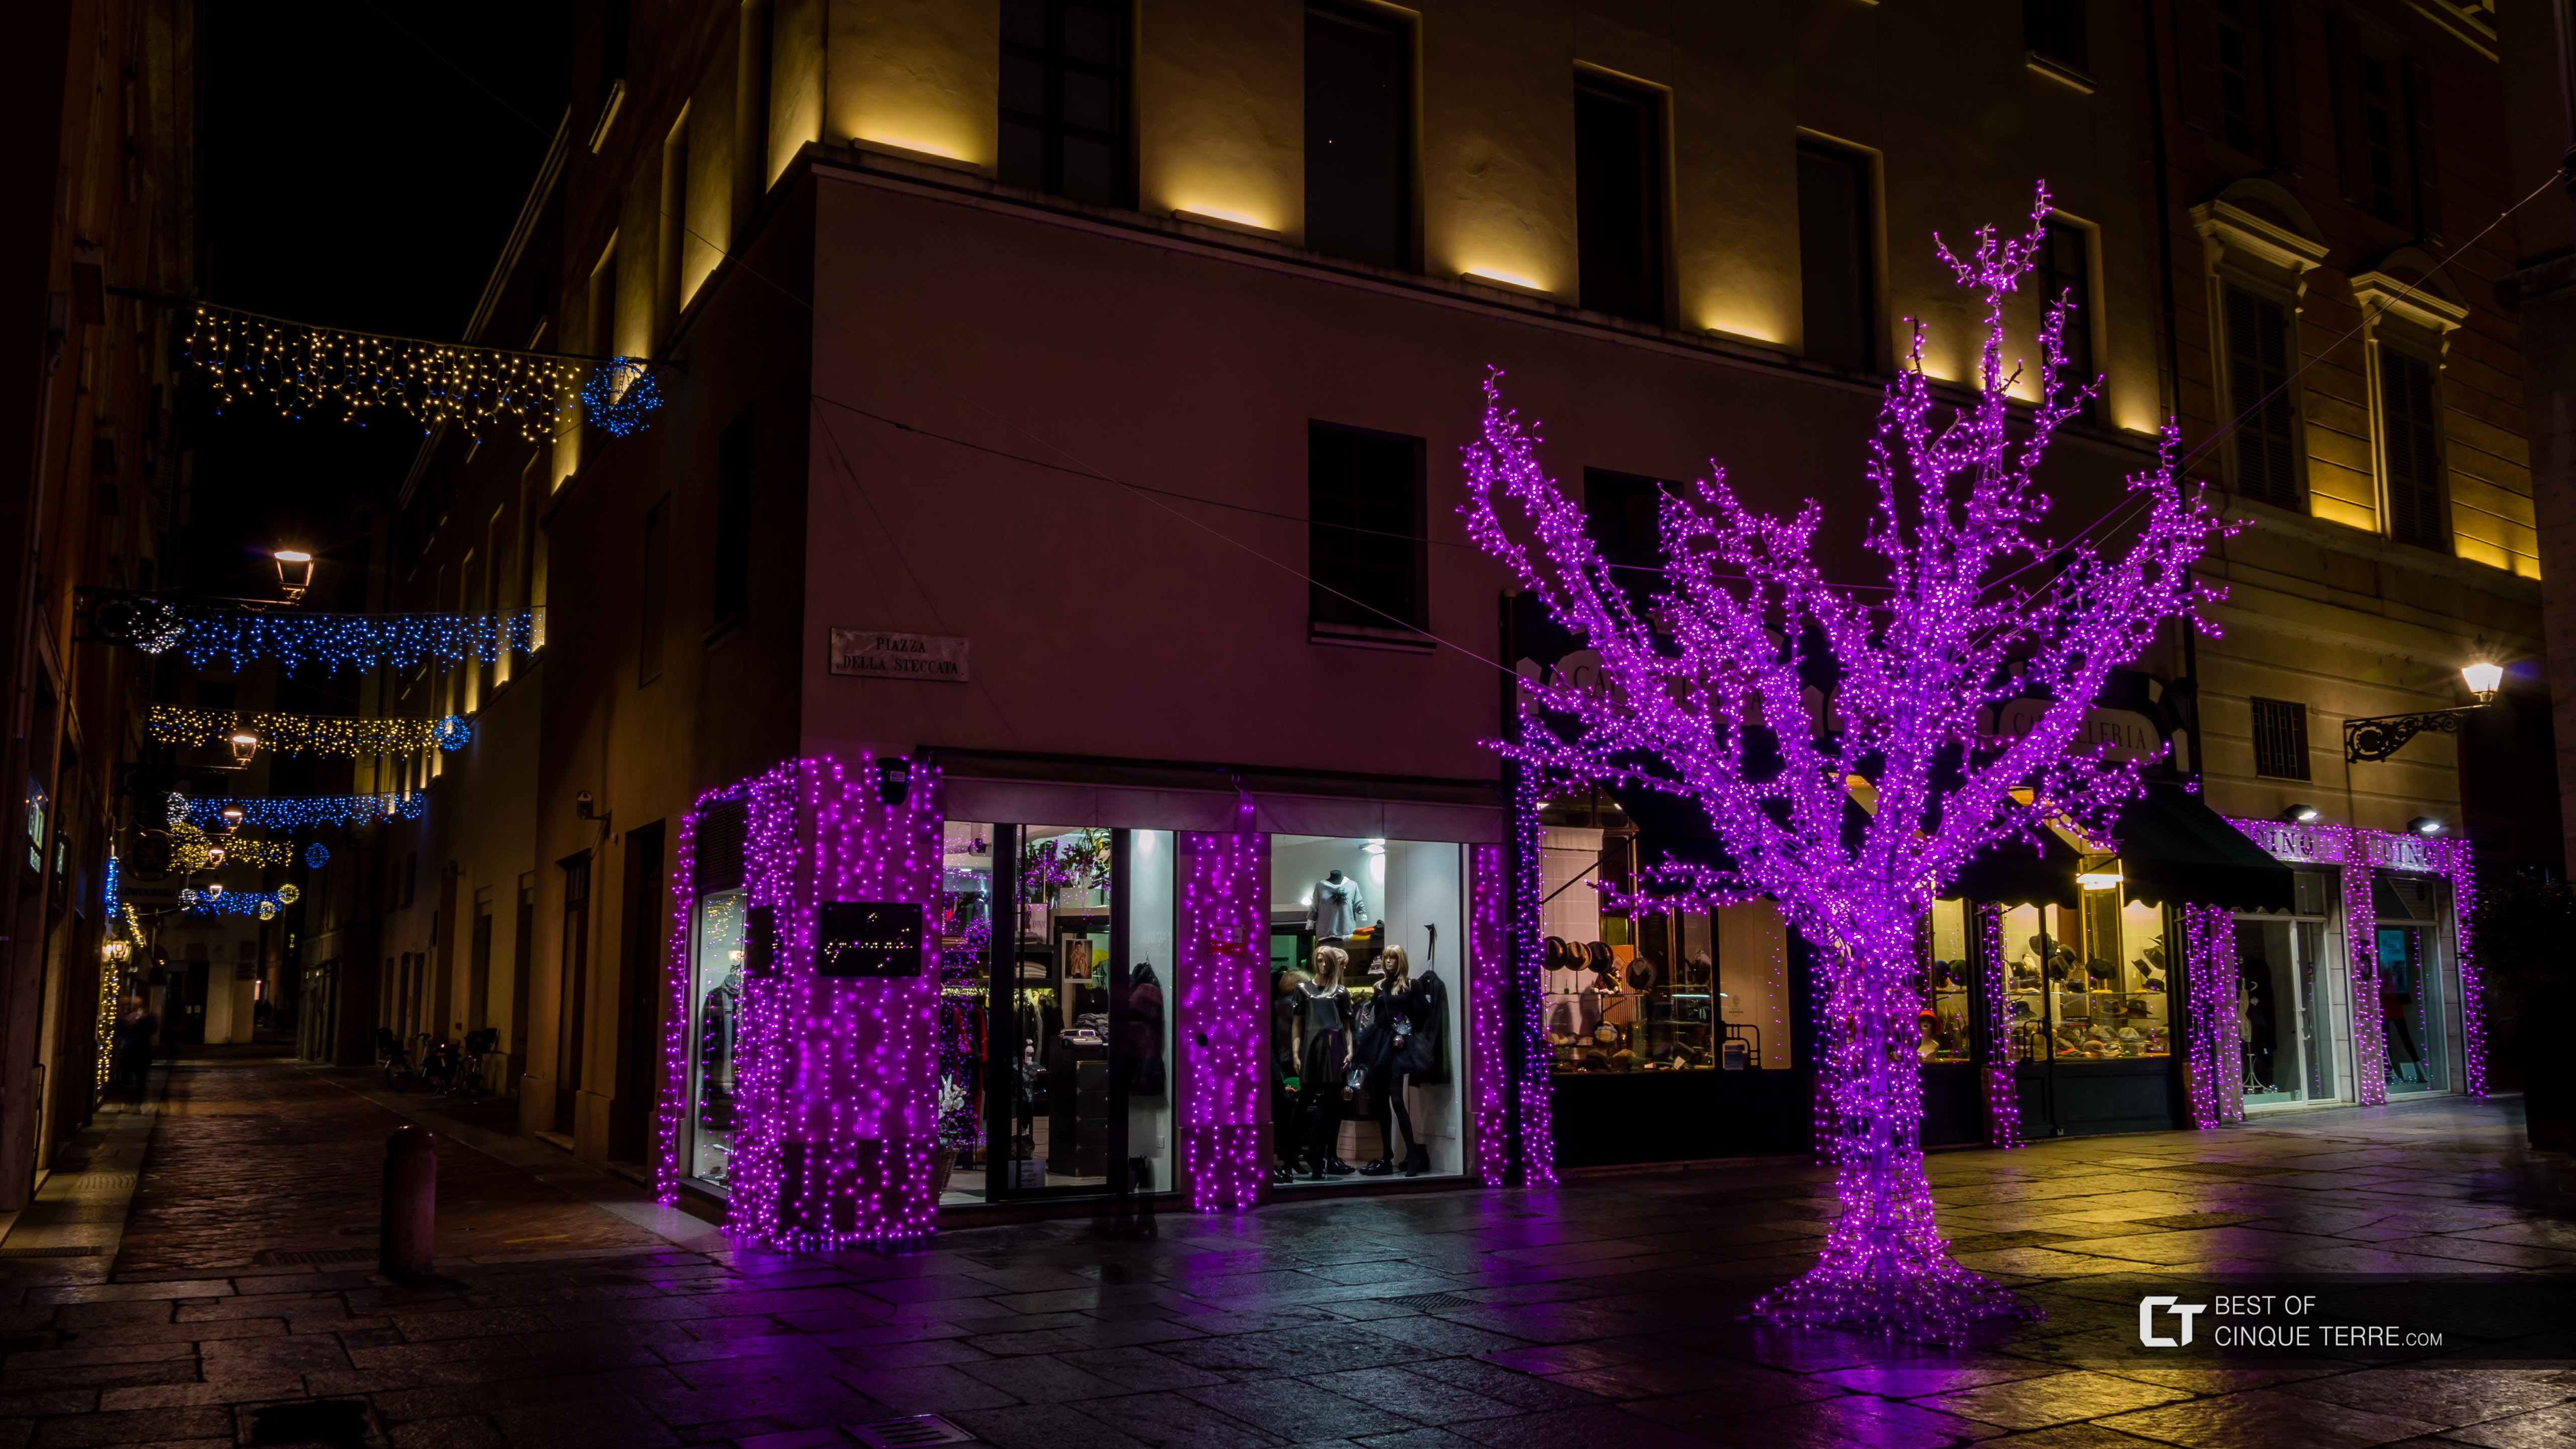 Downtown with traditional Christmas decorations, Parma, Italy